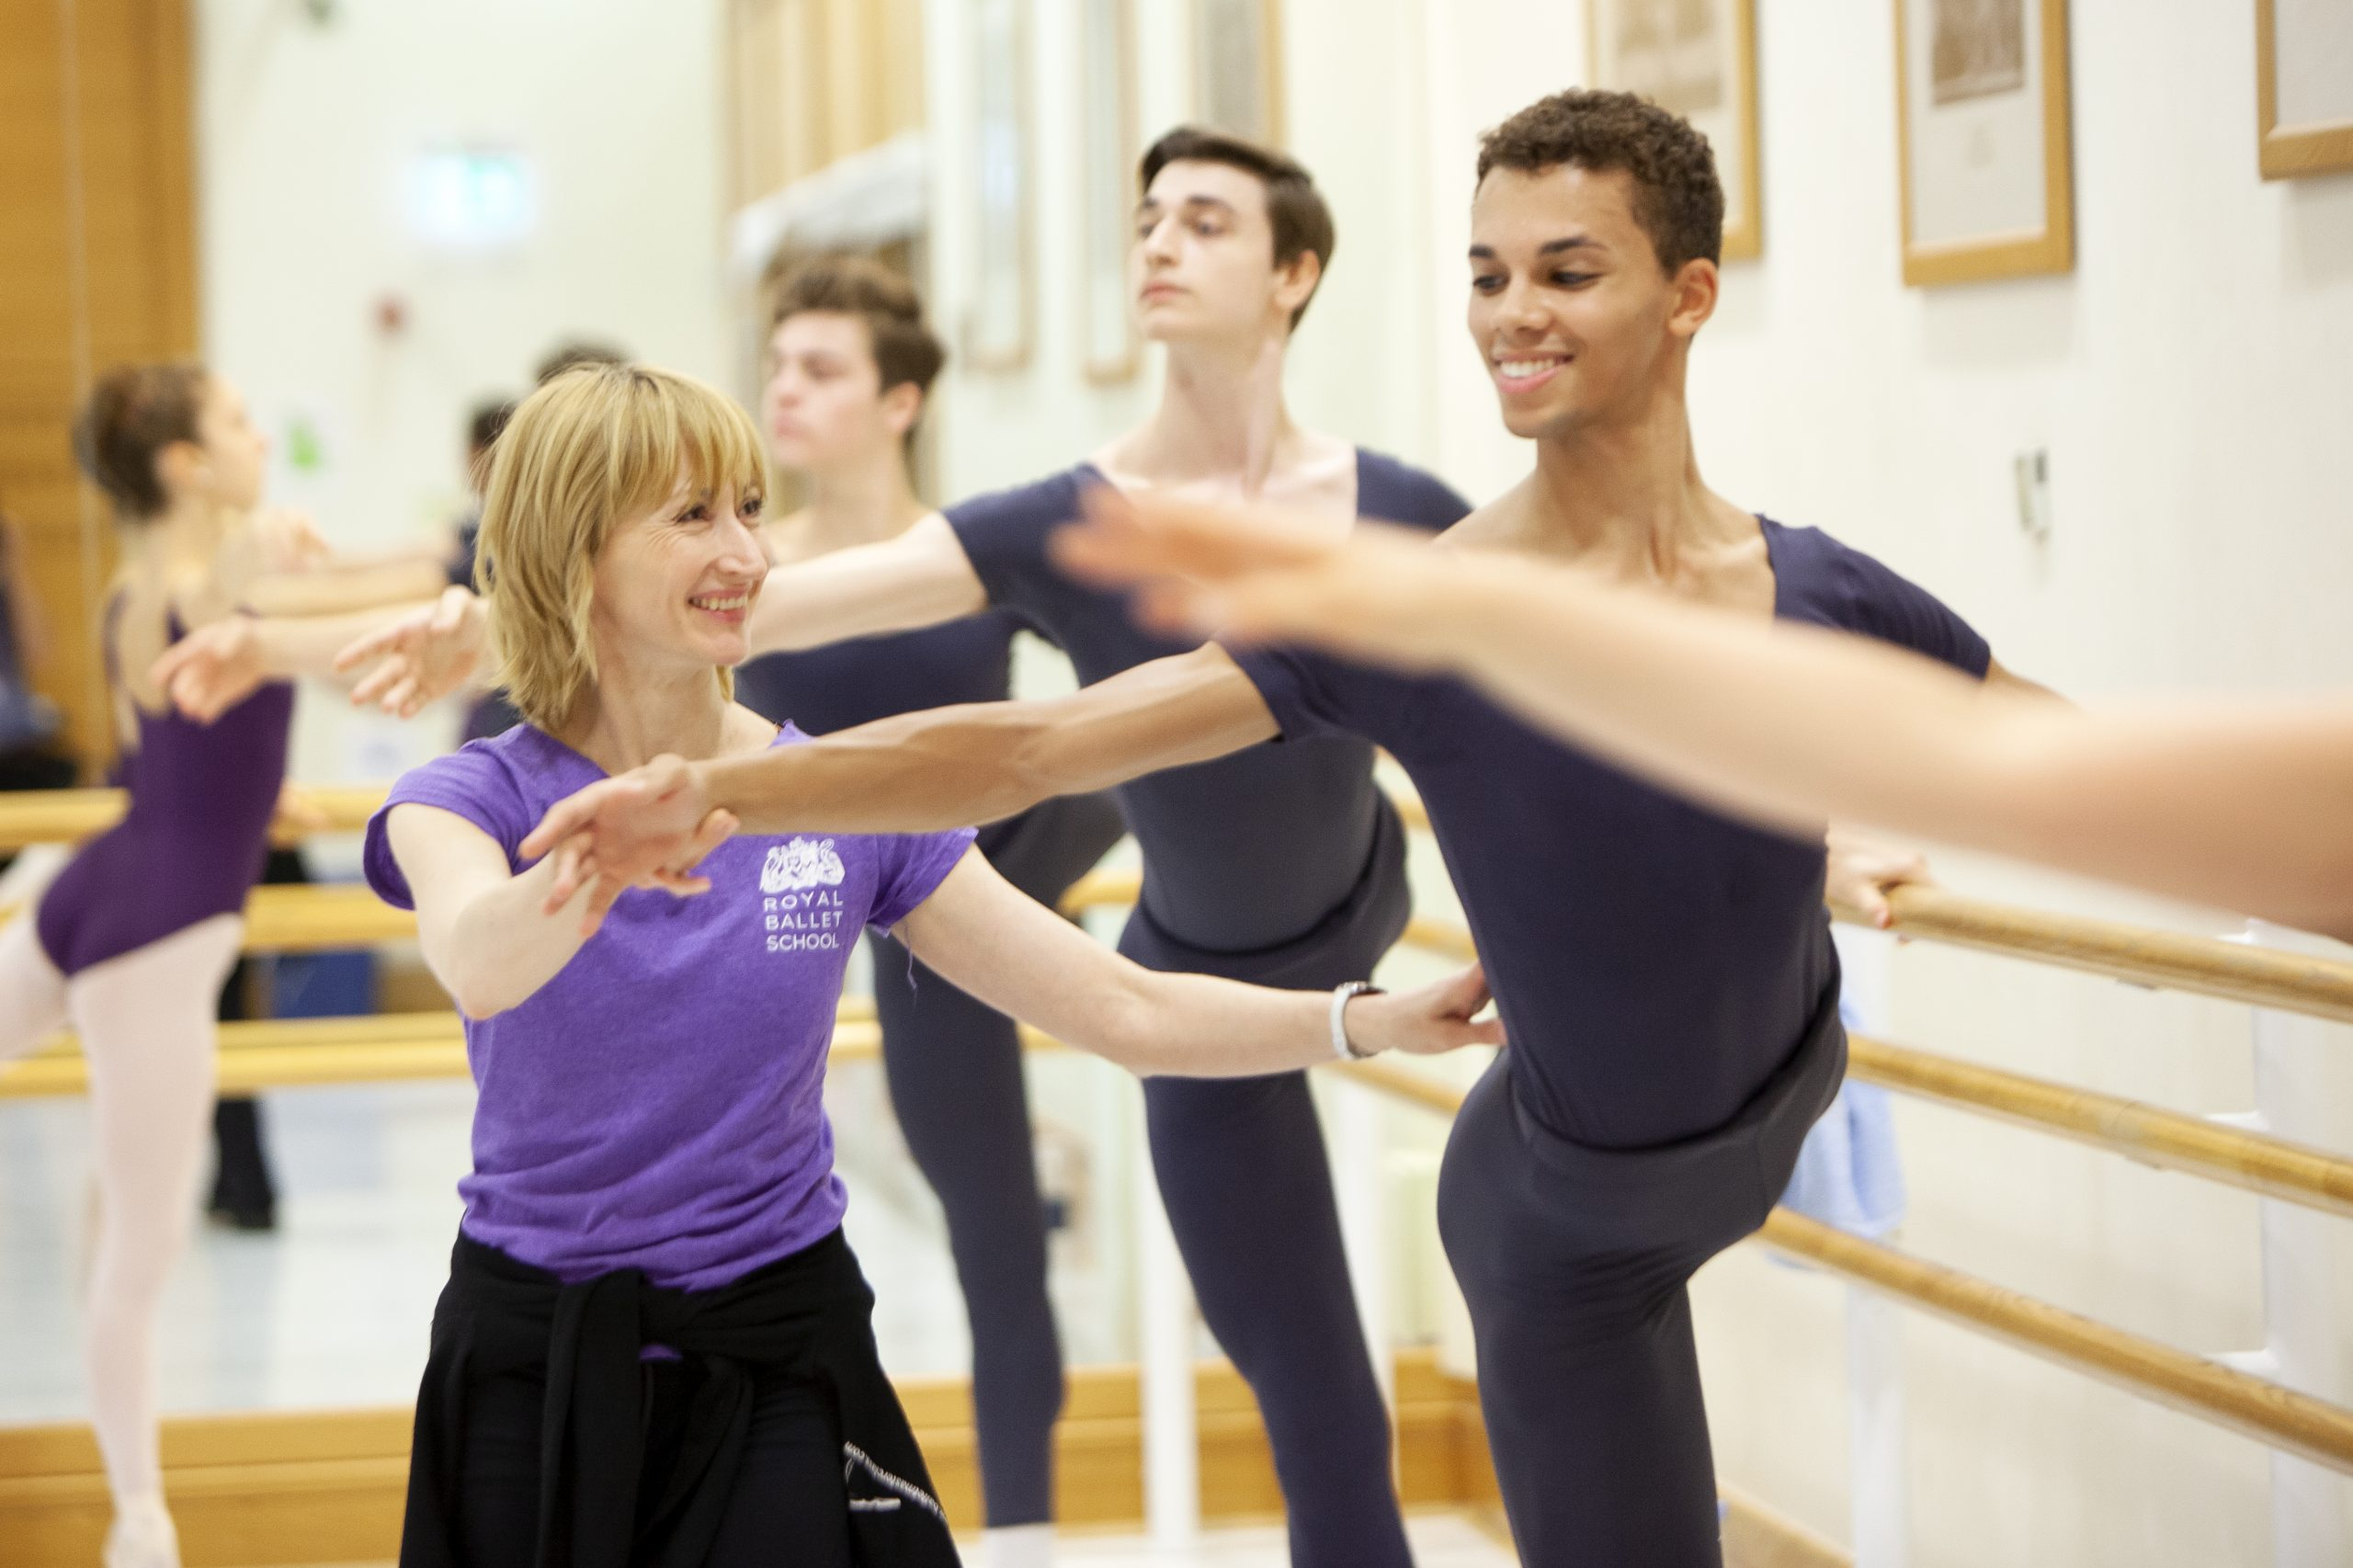 Ballet teacher helping a student at the barre